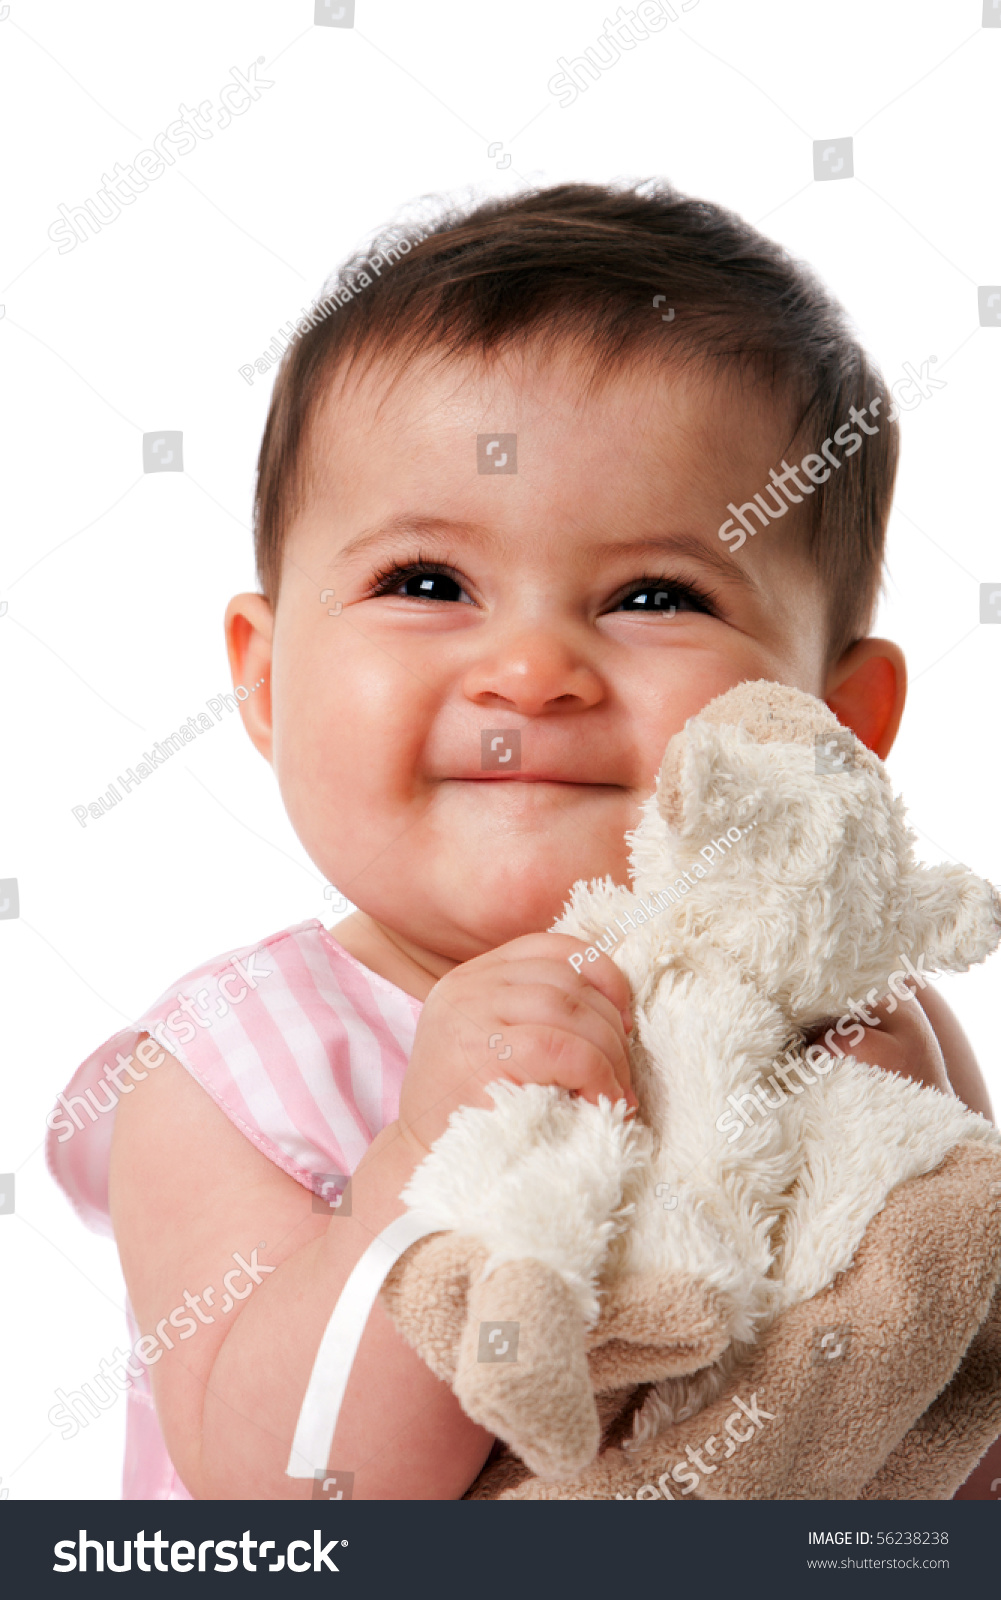 Pics For > Cute Happy Baby Faces Cute Happy Baby Girl